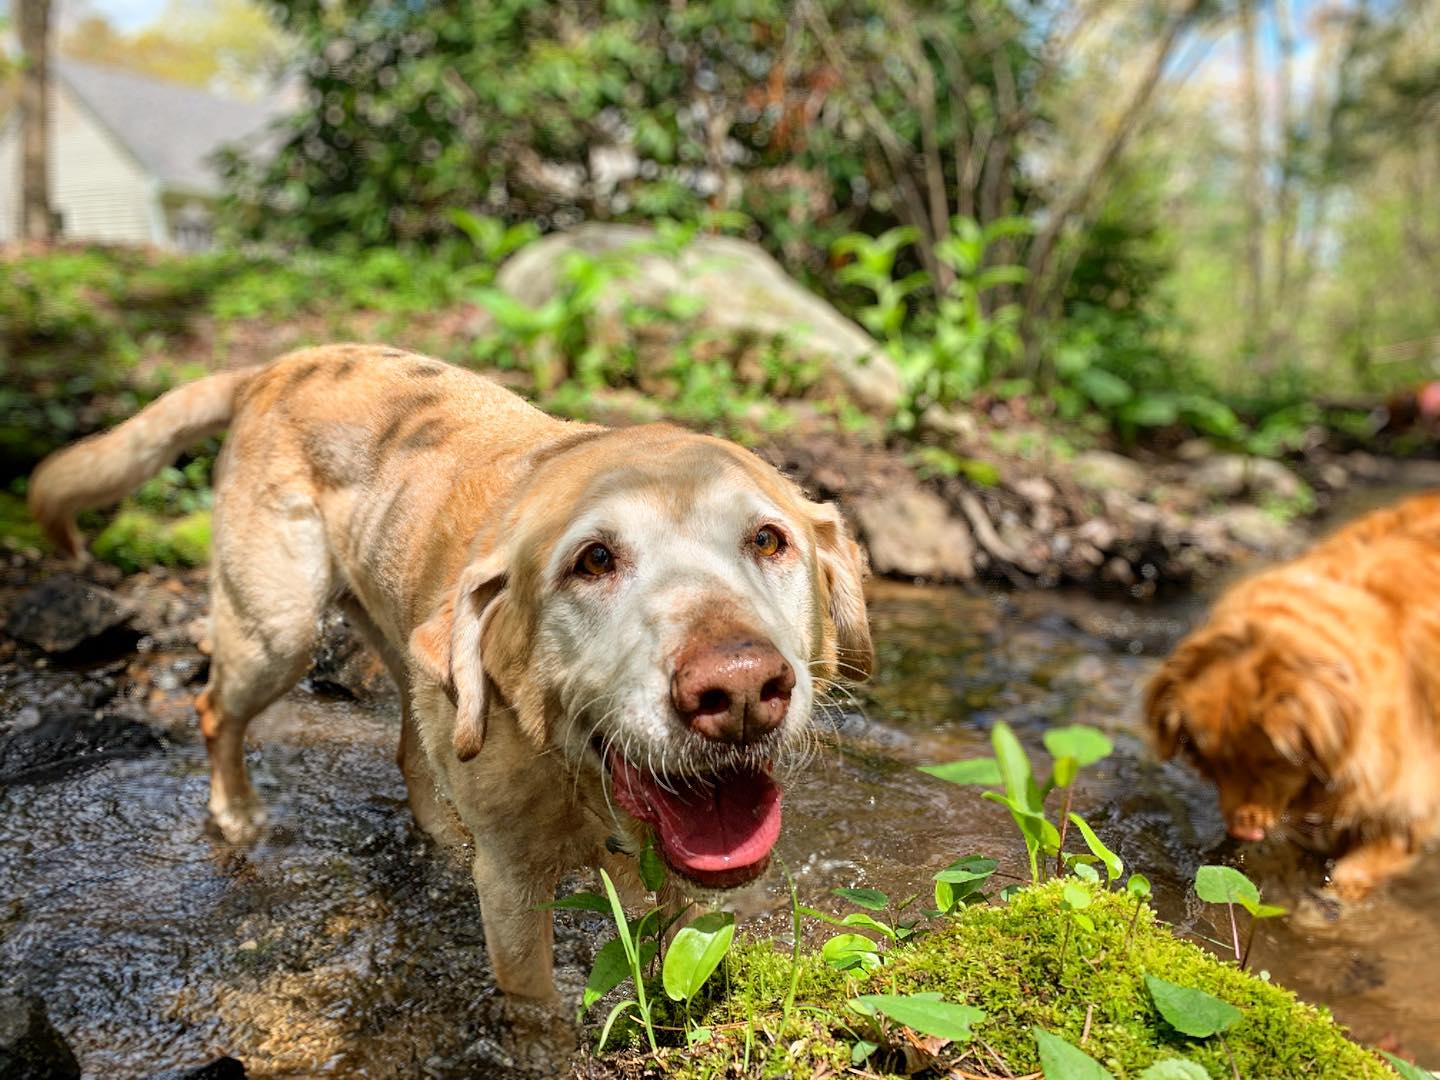 Dog hiking adventures and training in Canton, MA and surrounding areas. Find out why our dog hiking beats typical dog walks around the neighborhood!